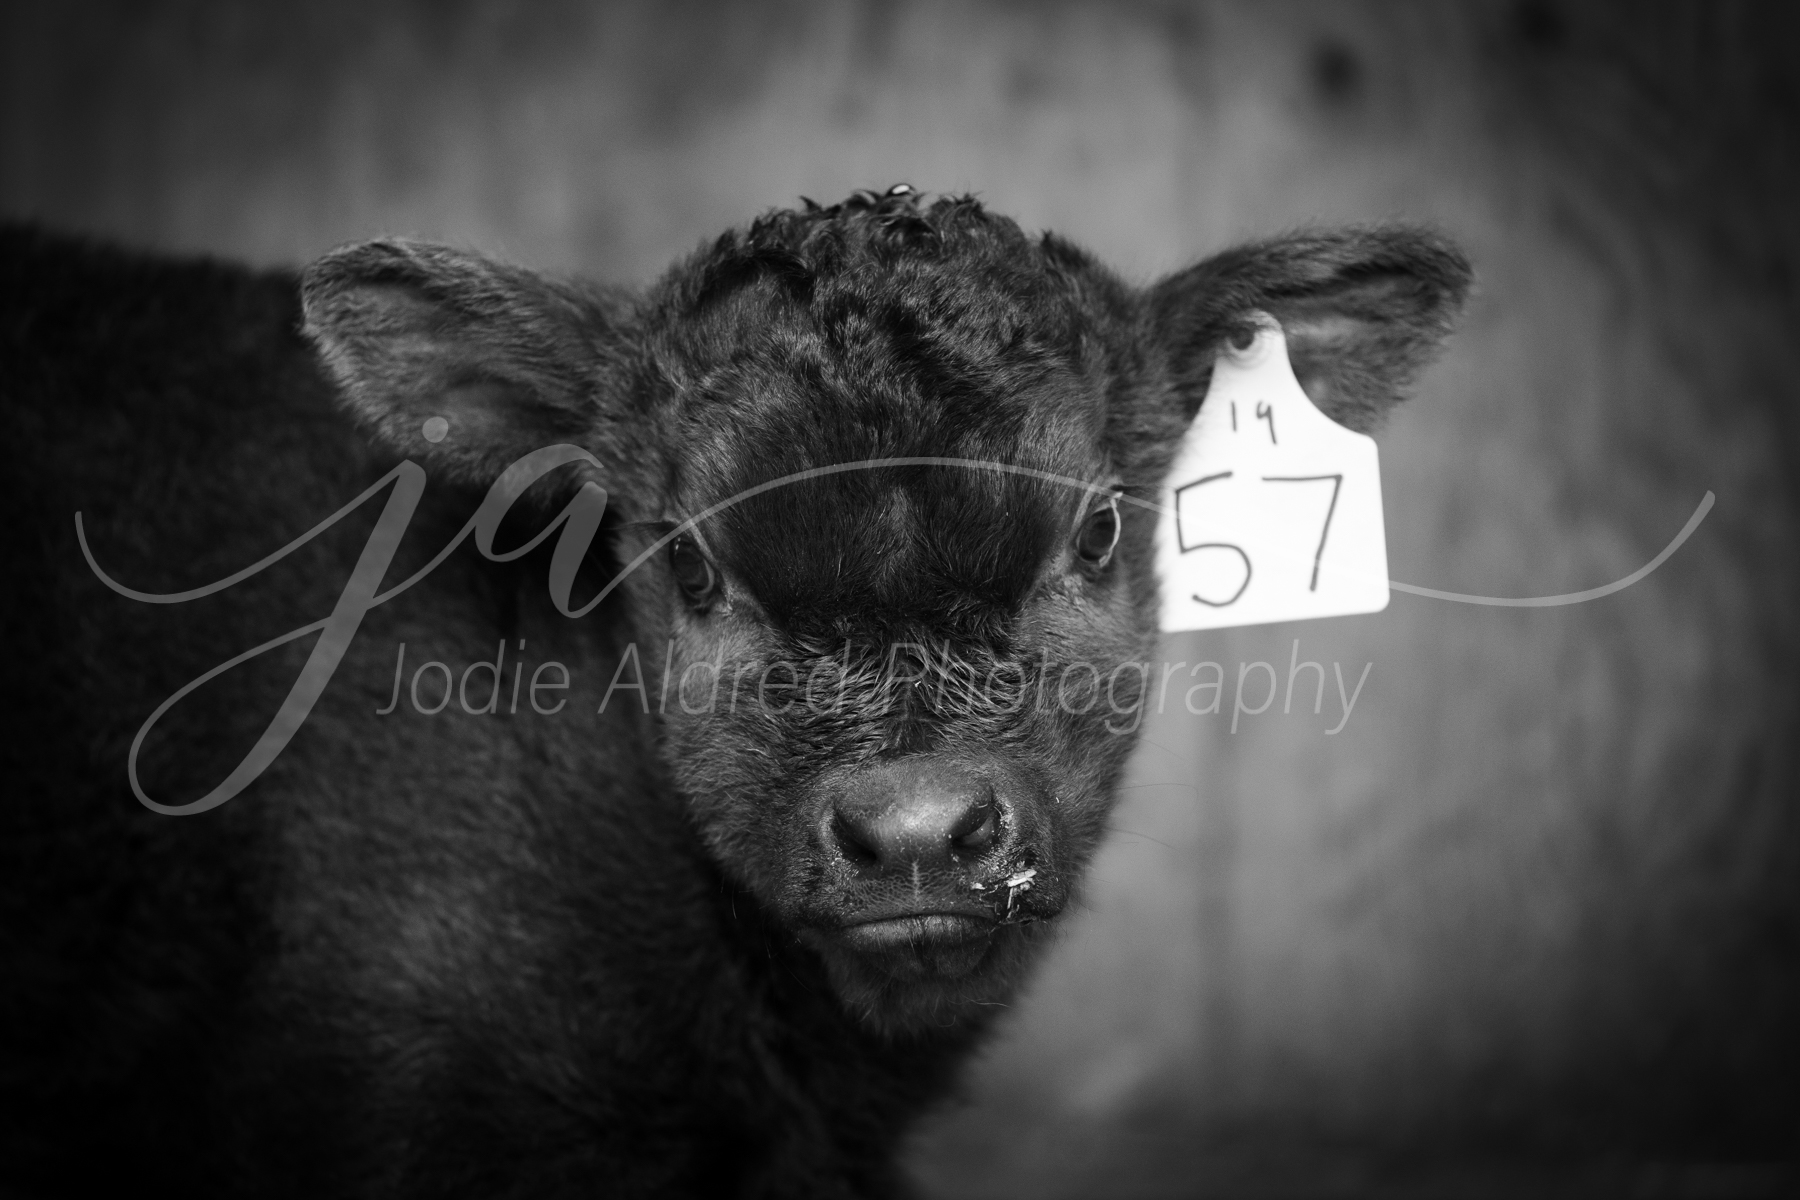 Jodie-Aldred-Photography-White-Black-Snow-Winter-Barnyard-Ontario-Agriculture-Farm-Winter-Barn-Calf-Cow-Cattle.jpg